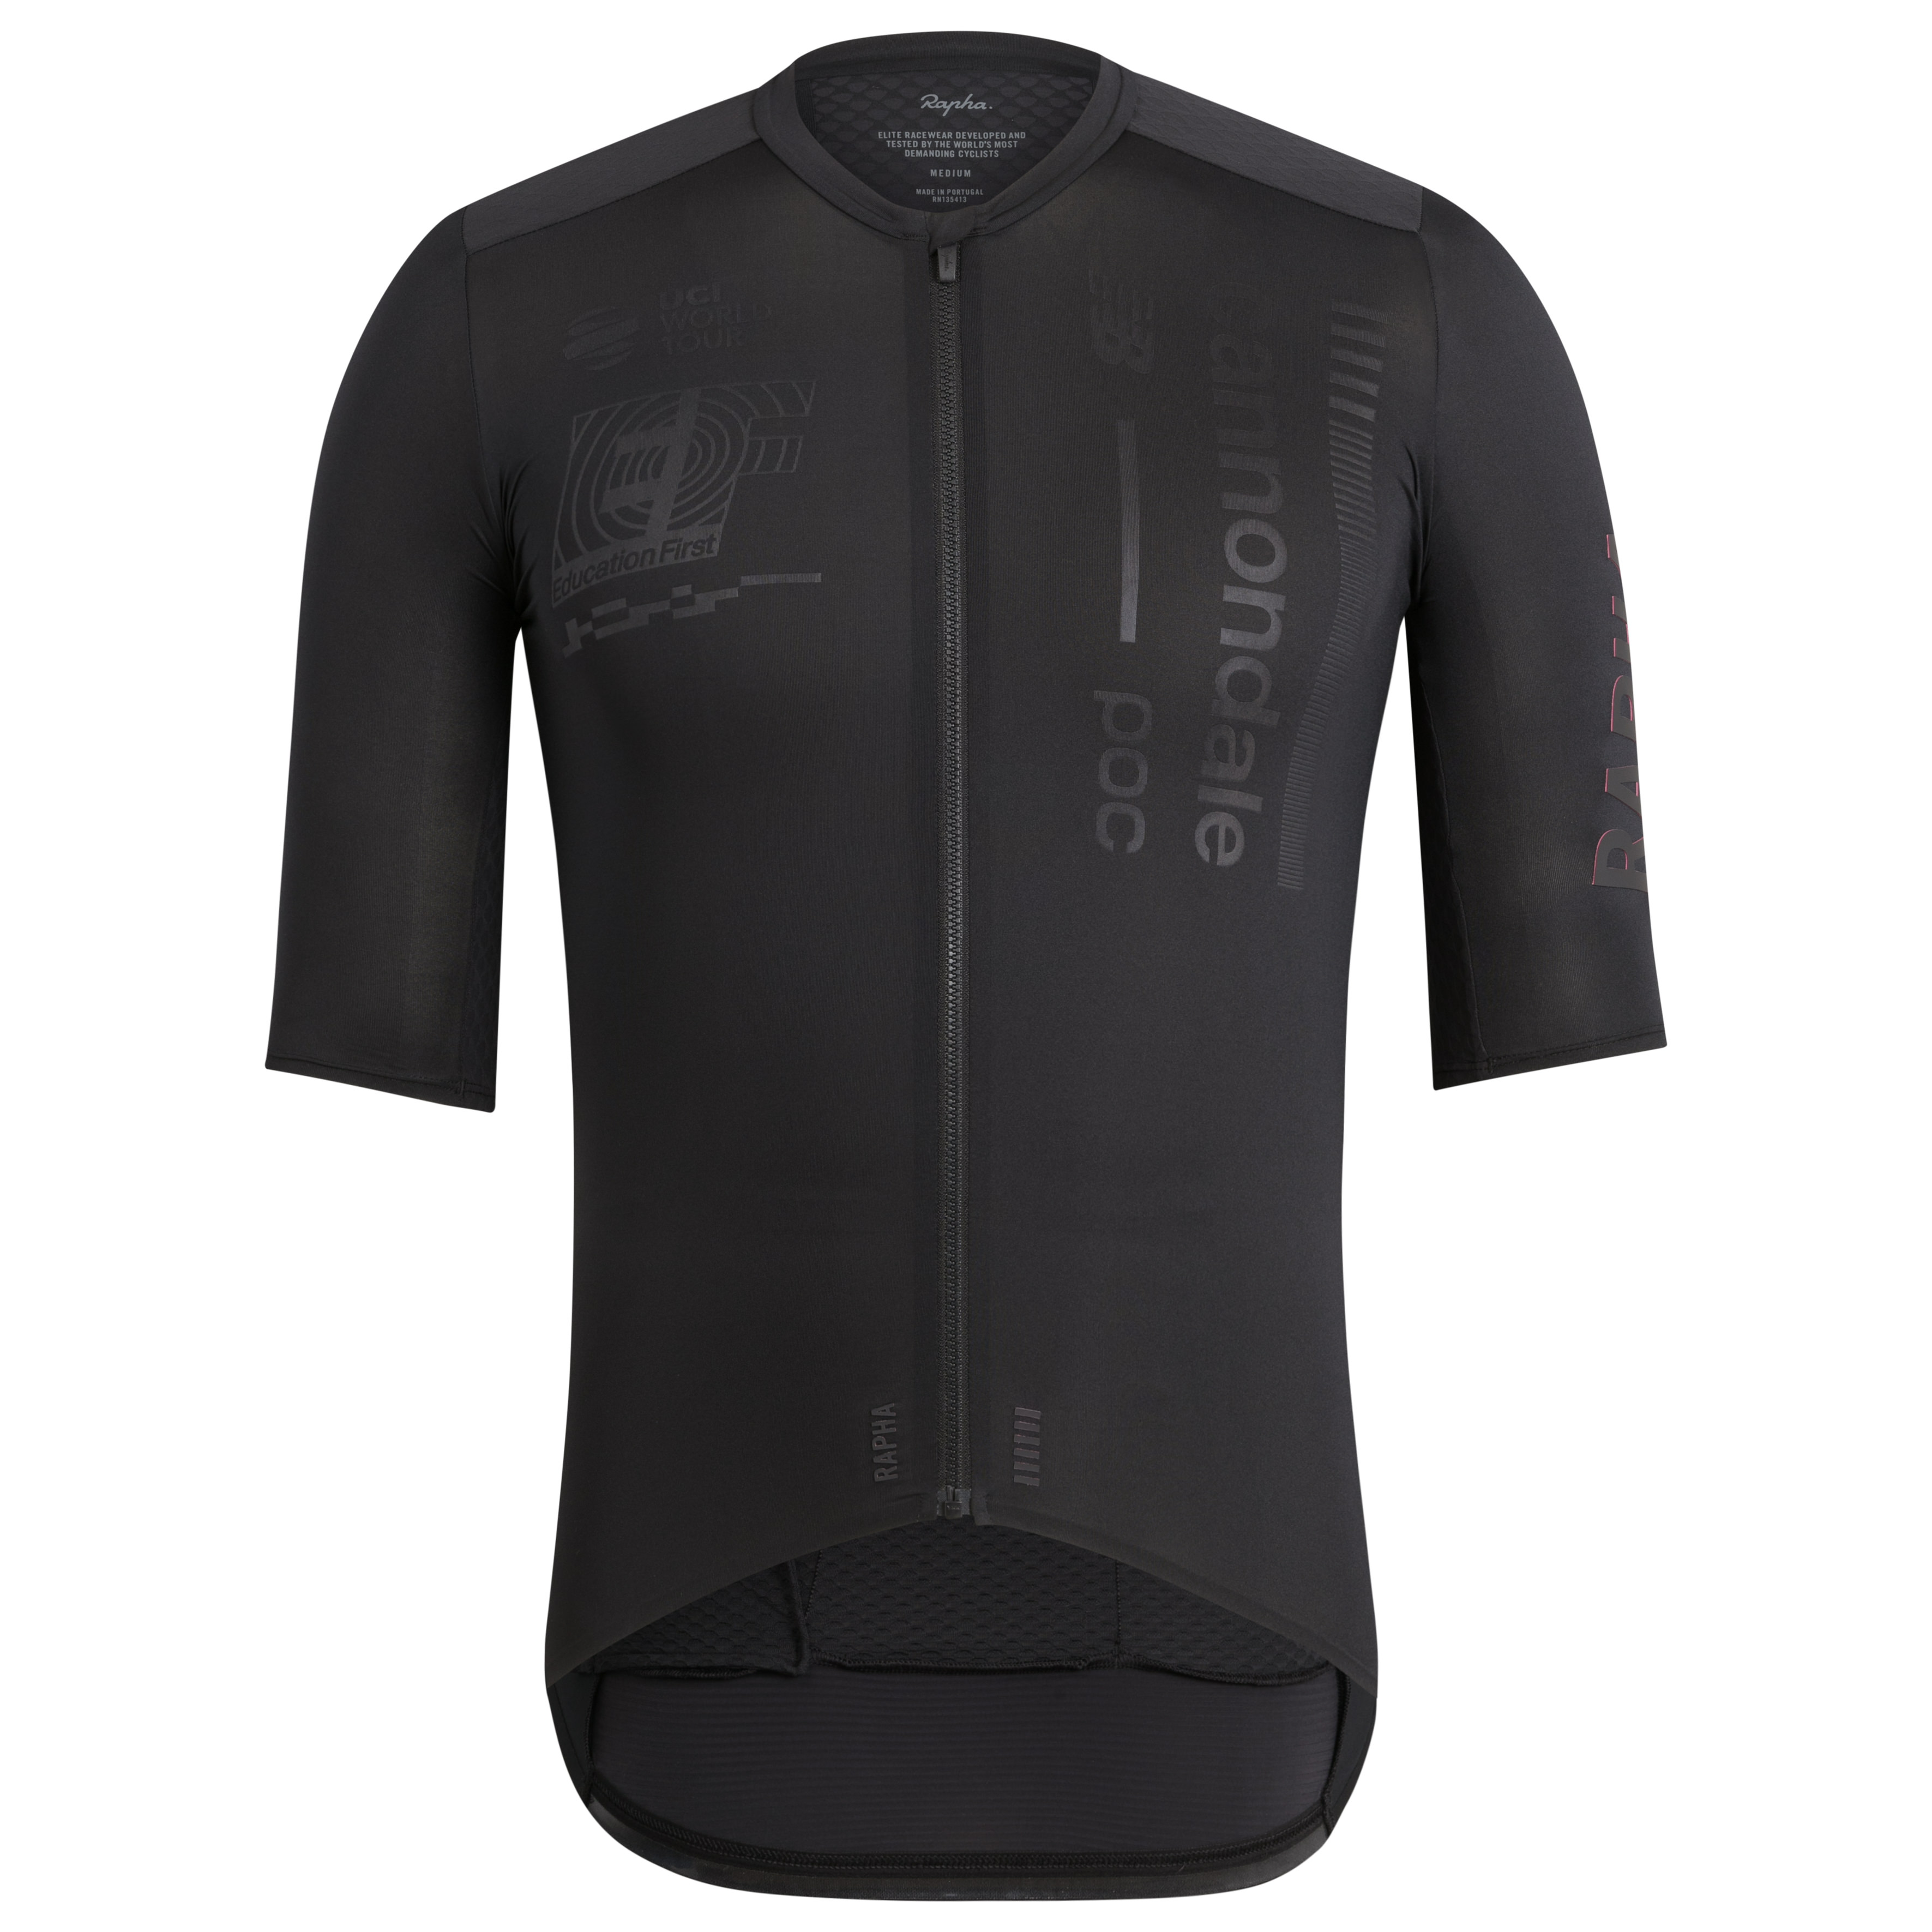 Rapha Blackout ahead of full EF Education first kit reveal